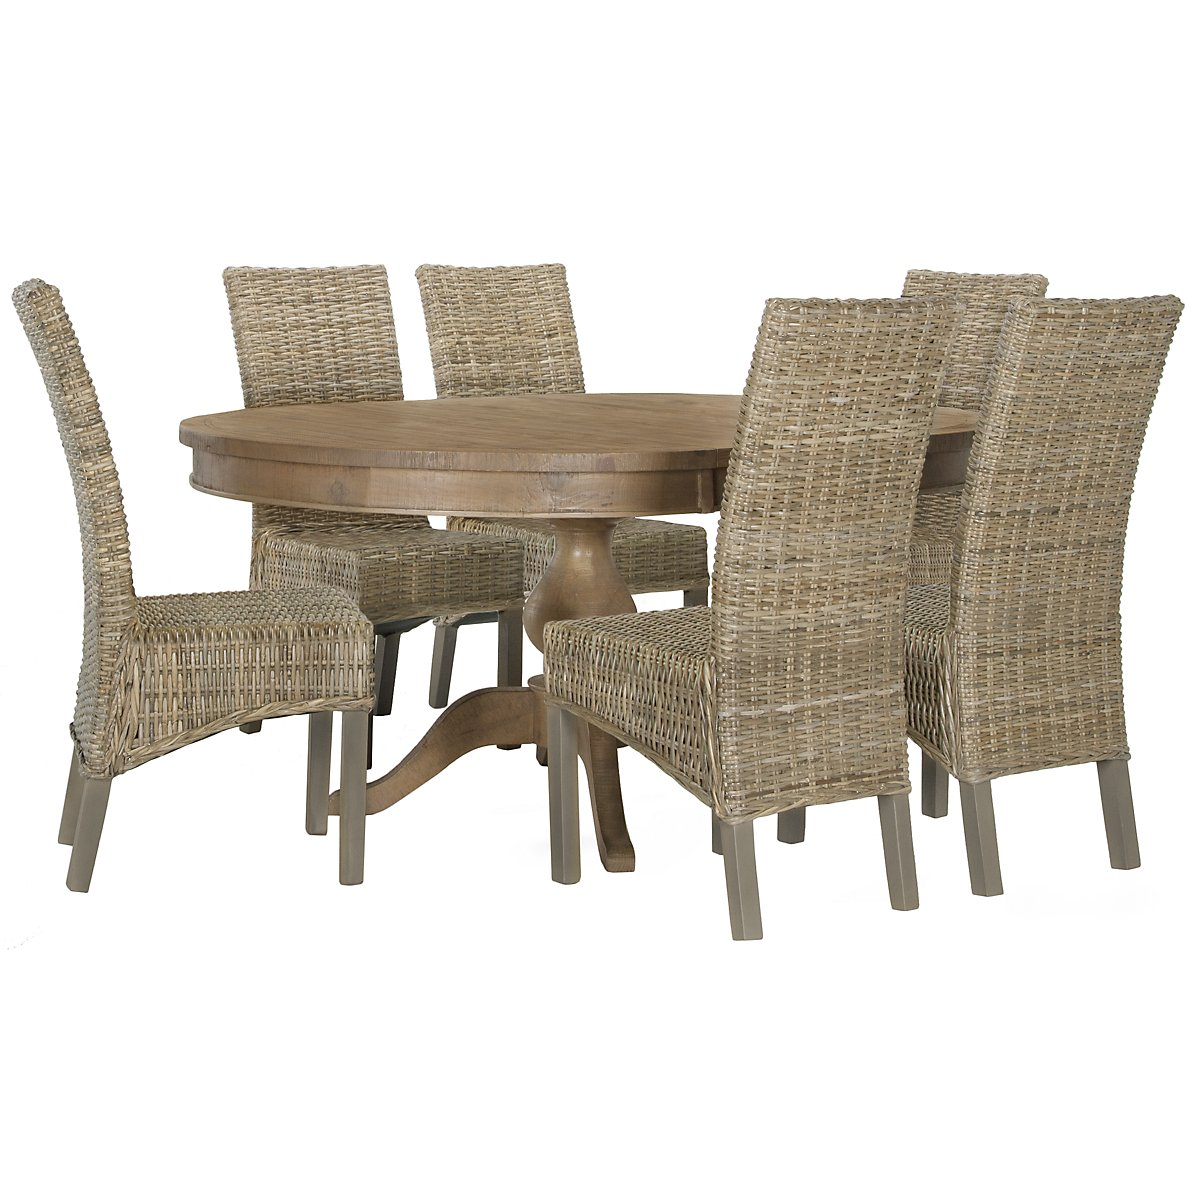 Jaden Light Tone Round Table & 4 Woven Chairs